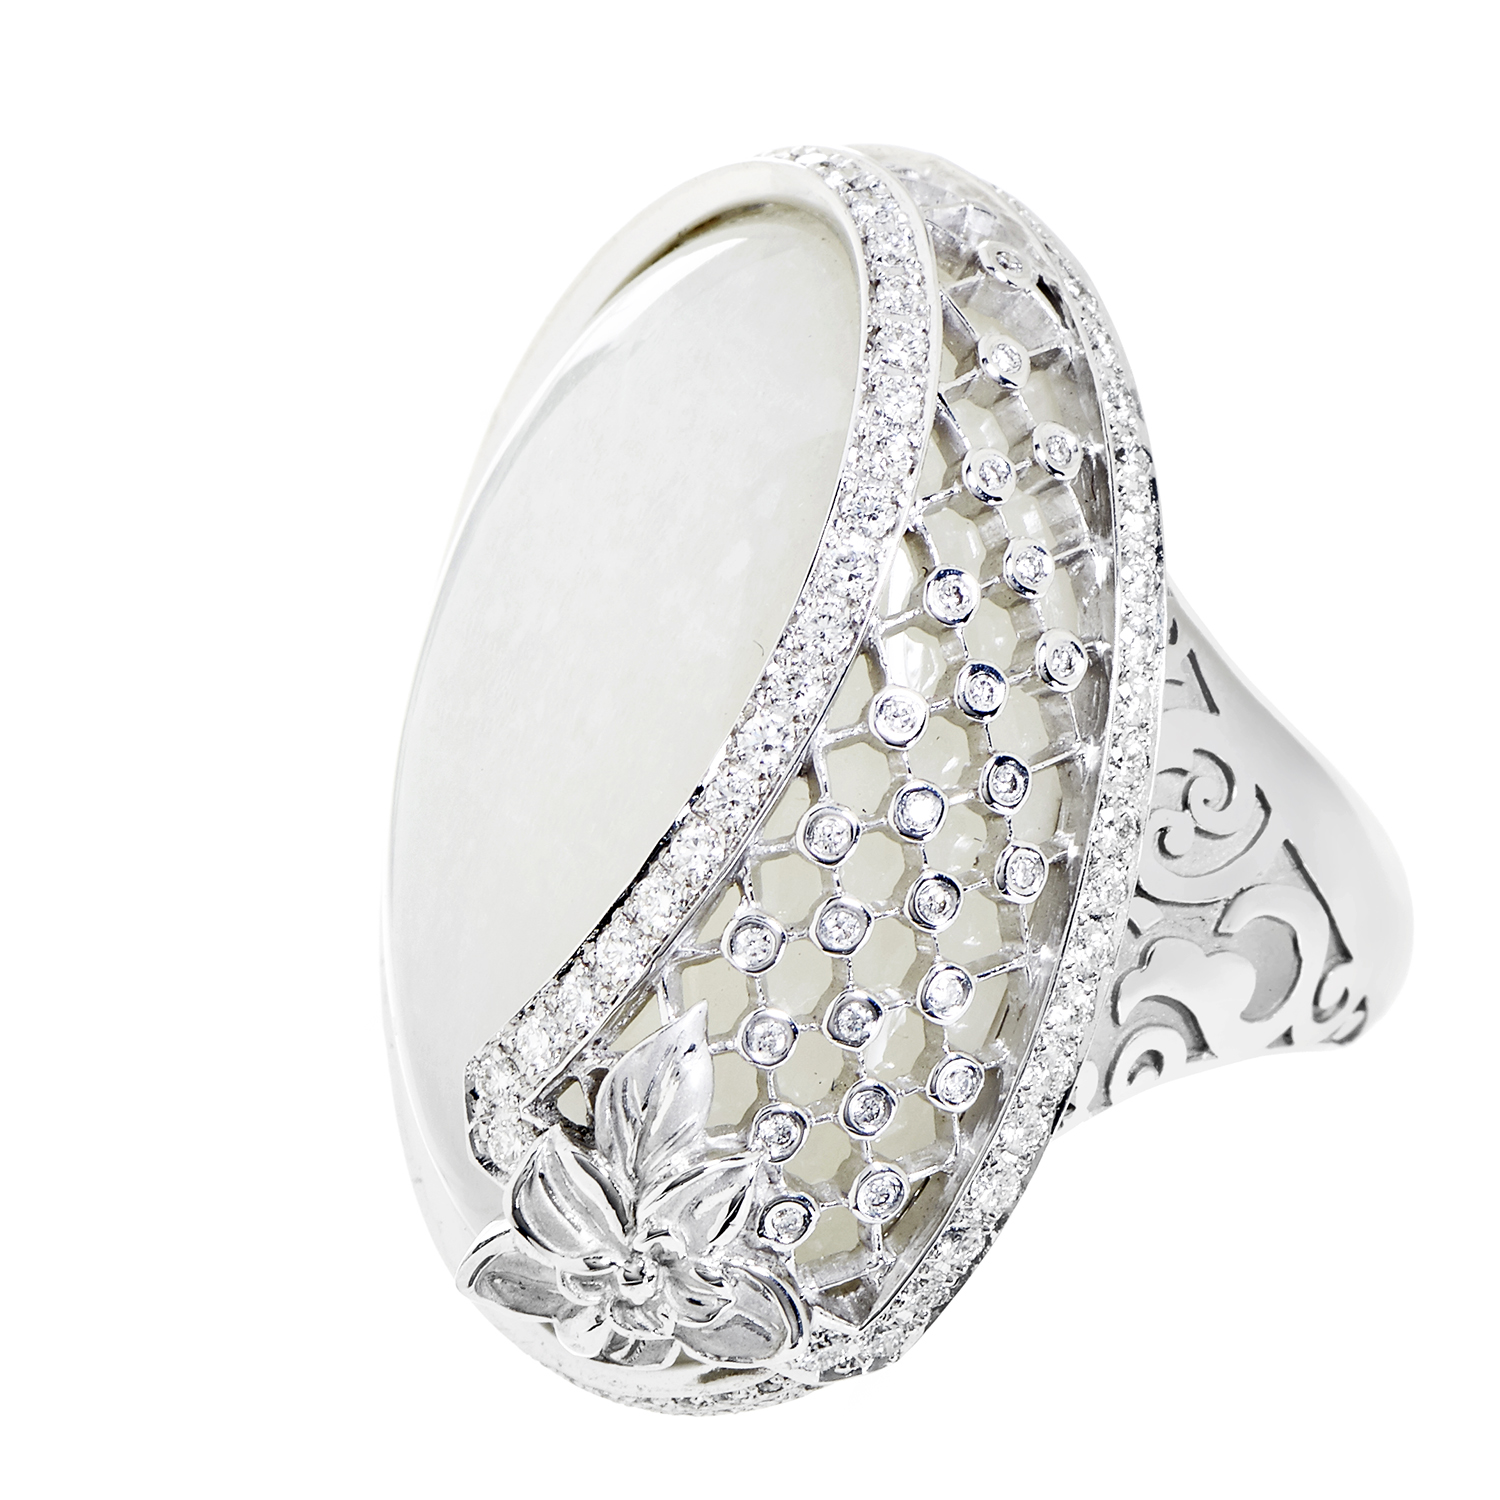 Sierpes Maxi 18K White Gold Diamond & Moonstone Cocktail Ring